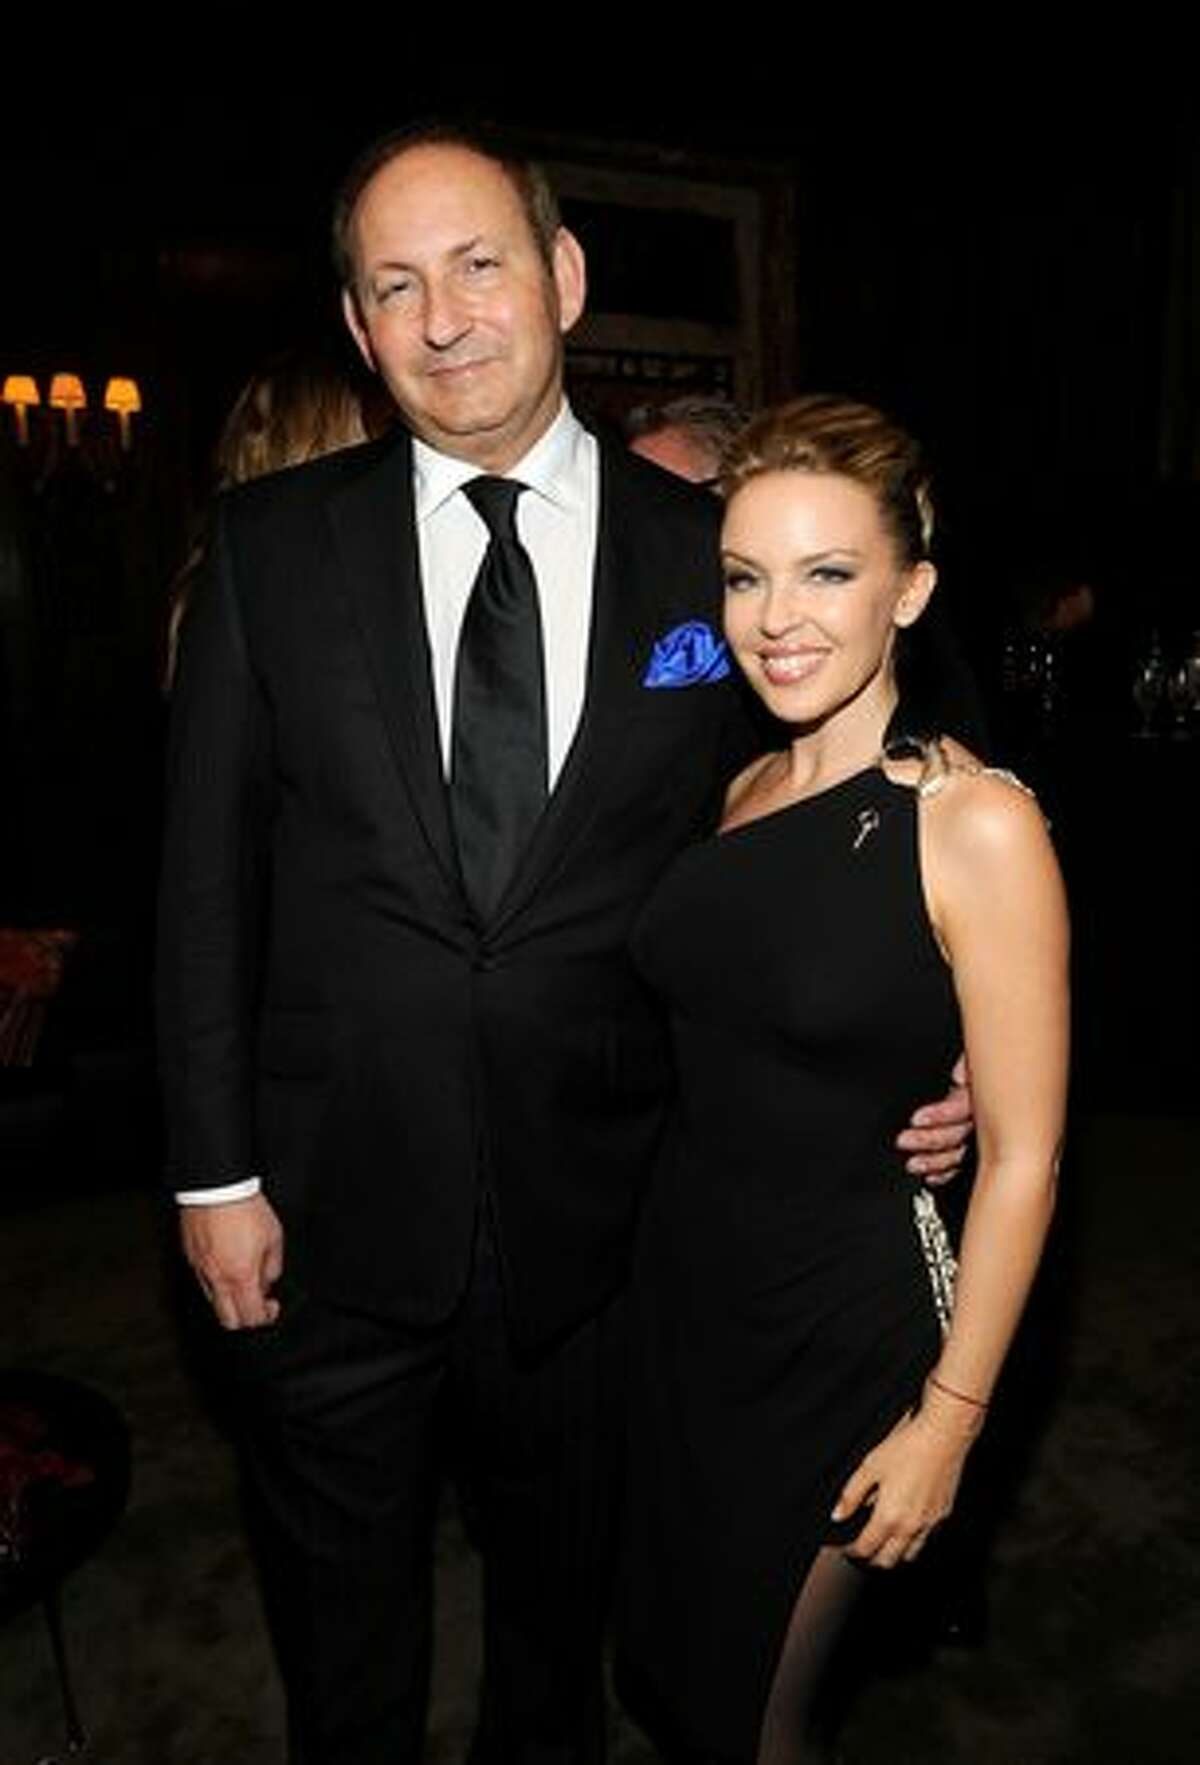 (L-R) President of MAC cosmetics John Dempsey and singer Kylie Minogue attend the 2010 amfAR New York Inspiration Gala at The New York Public Library.